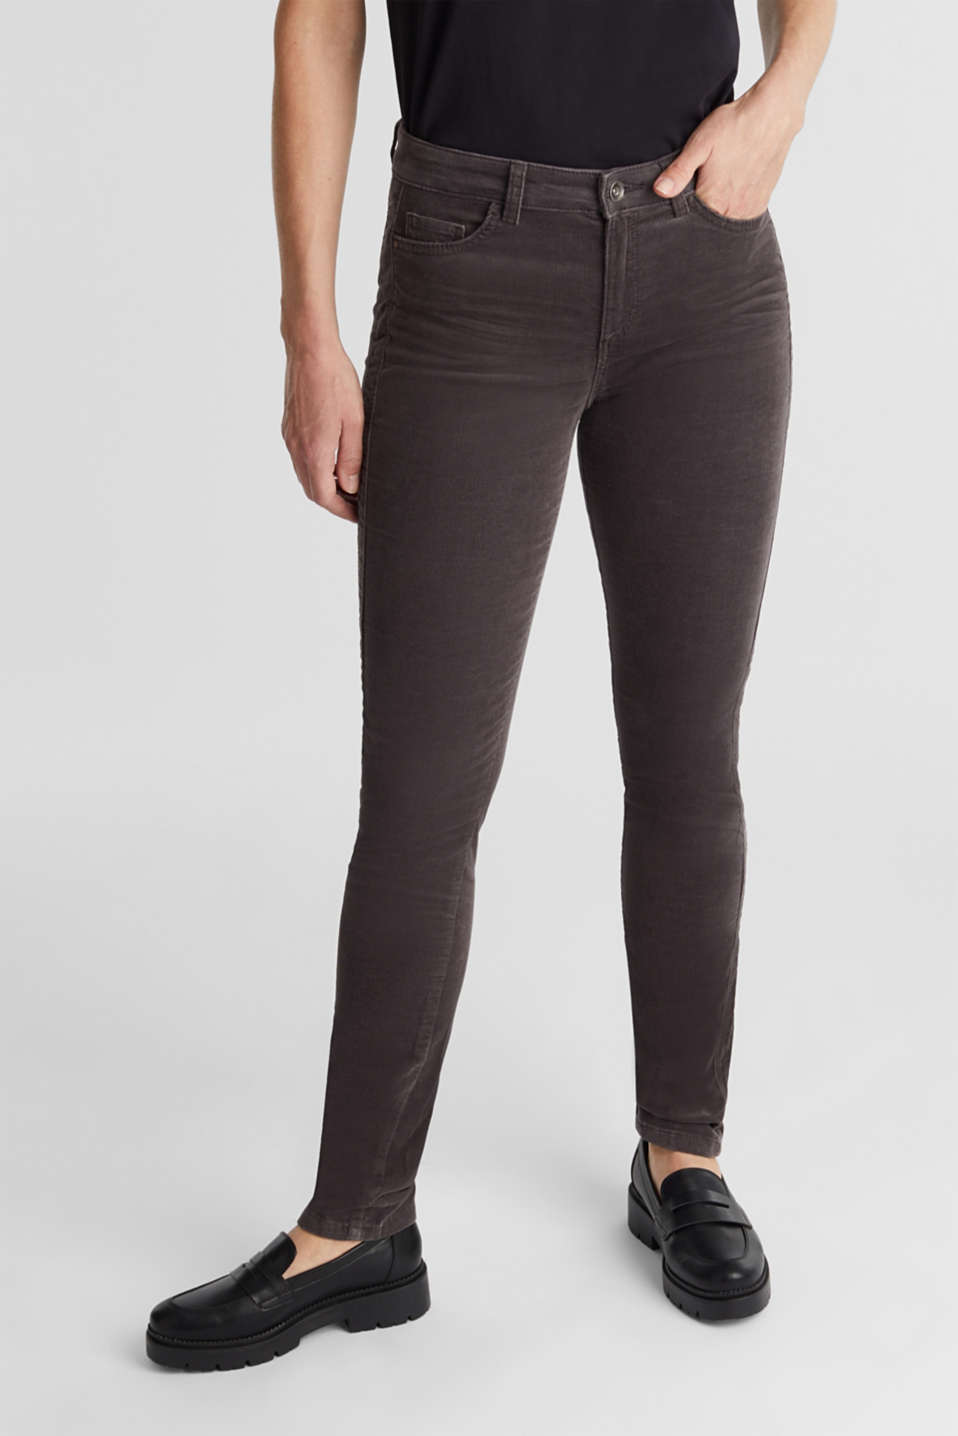 Esprit - Pantalon stretch en velours côtelé